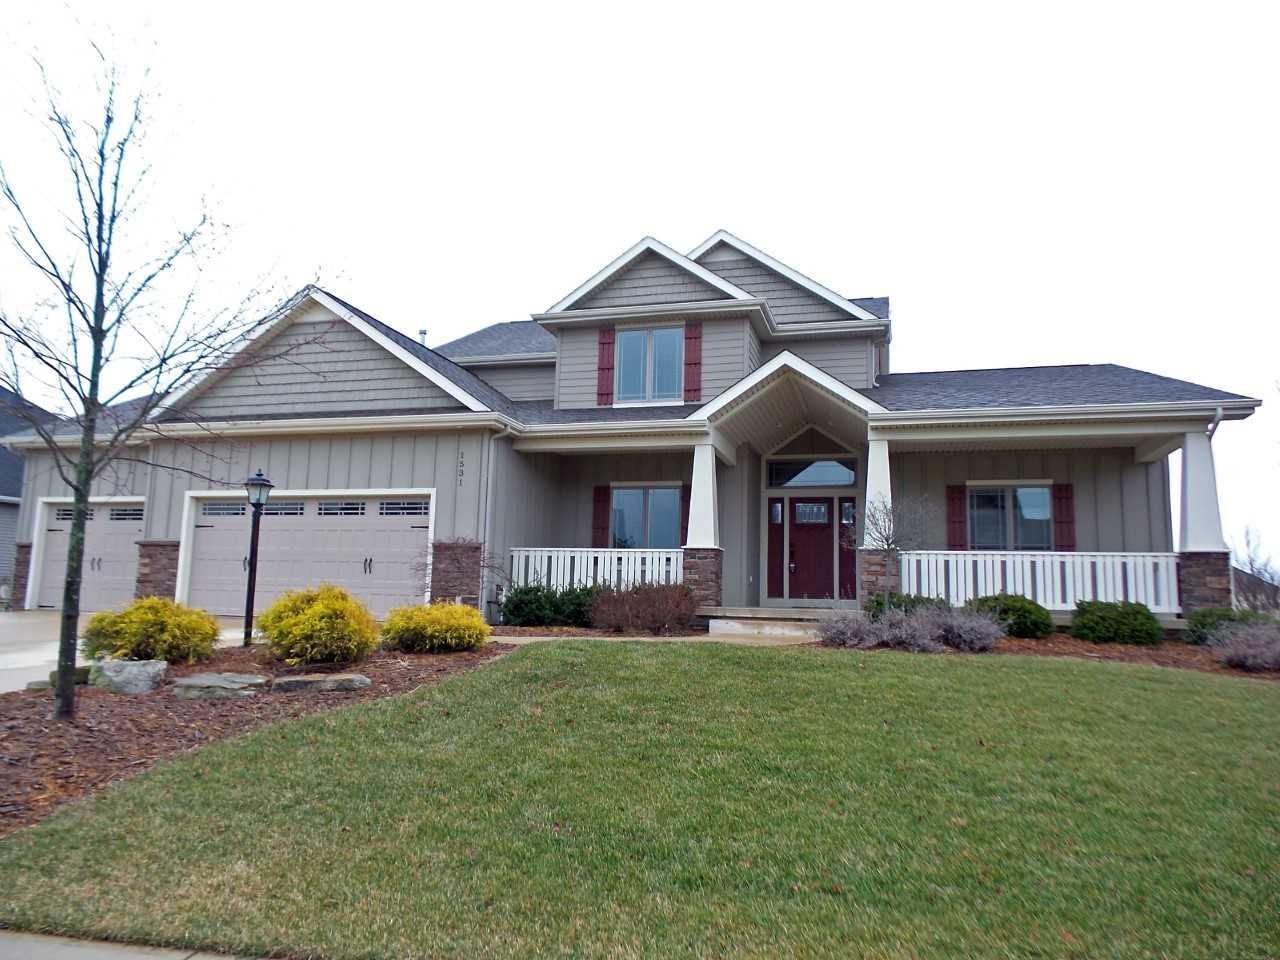 1531 Waxwing Court, Fort Wayne, IN 46814